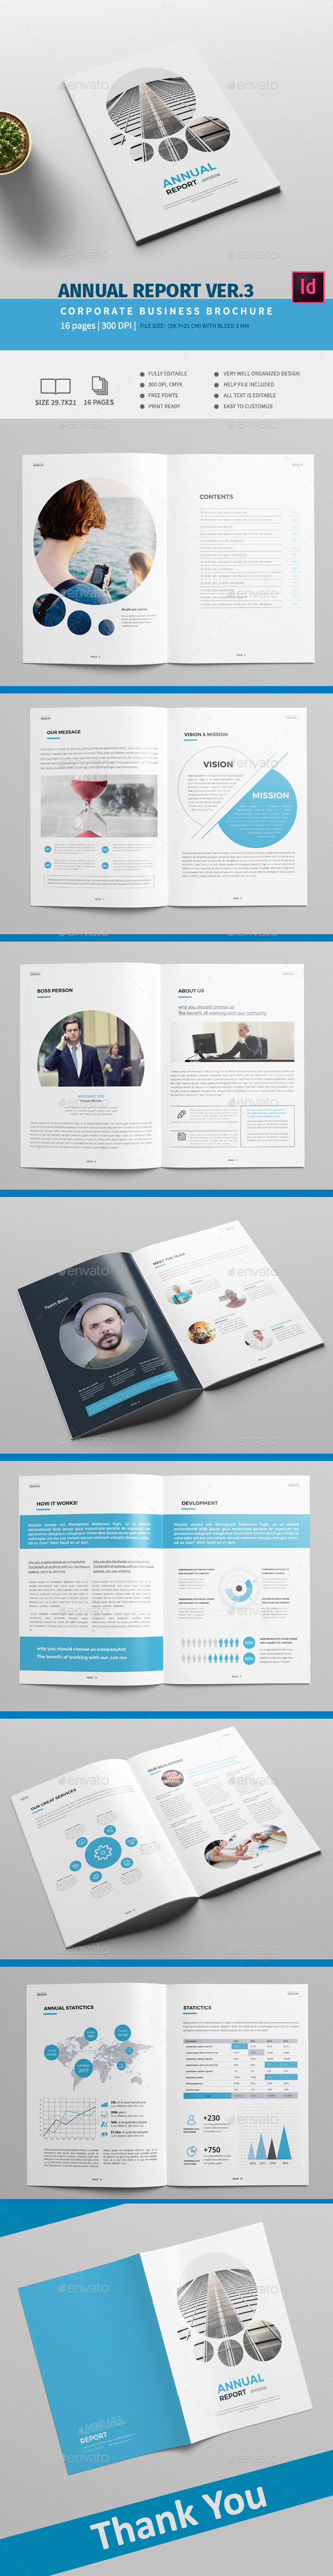 Annual Report VER.3 - Corporate Brochures